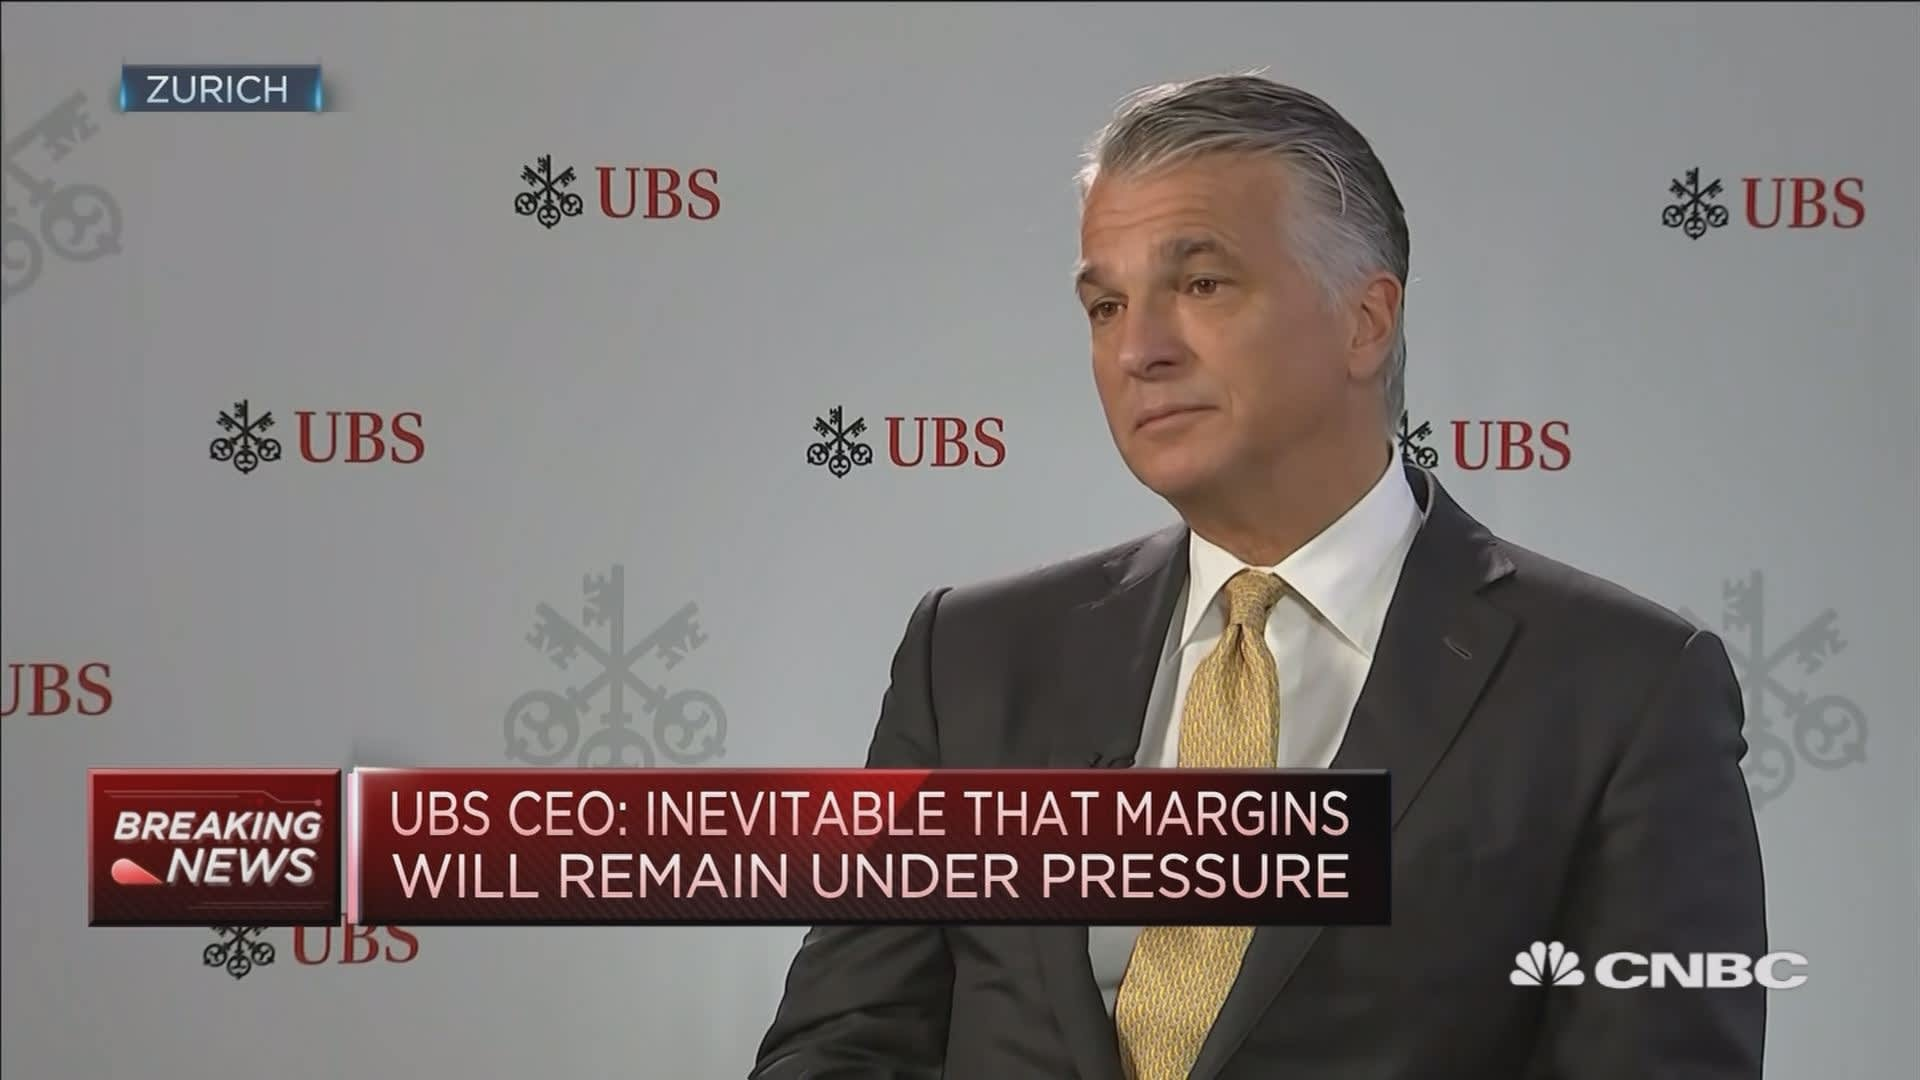 UBS forecast: for the II quarter of 2015 will sell 51 million iPhones 29